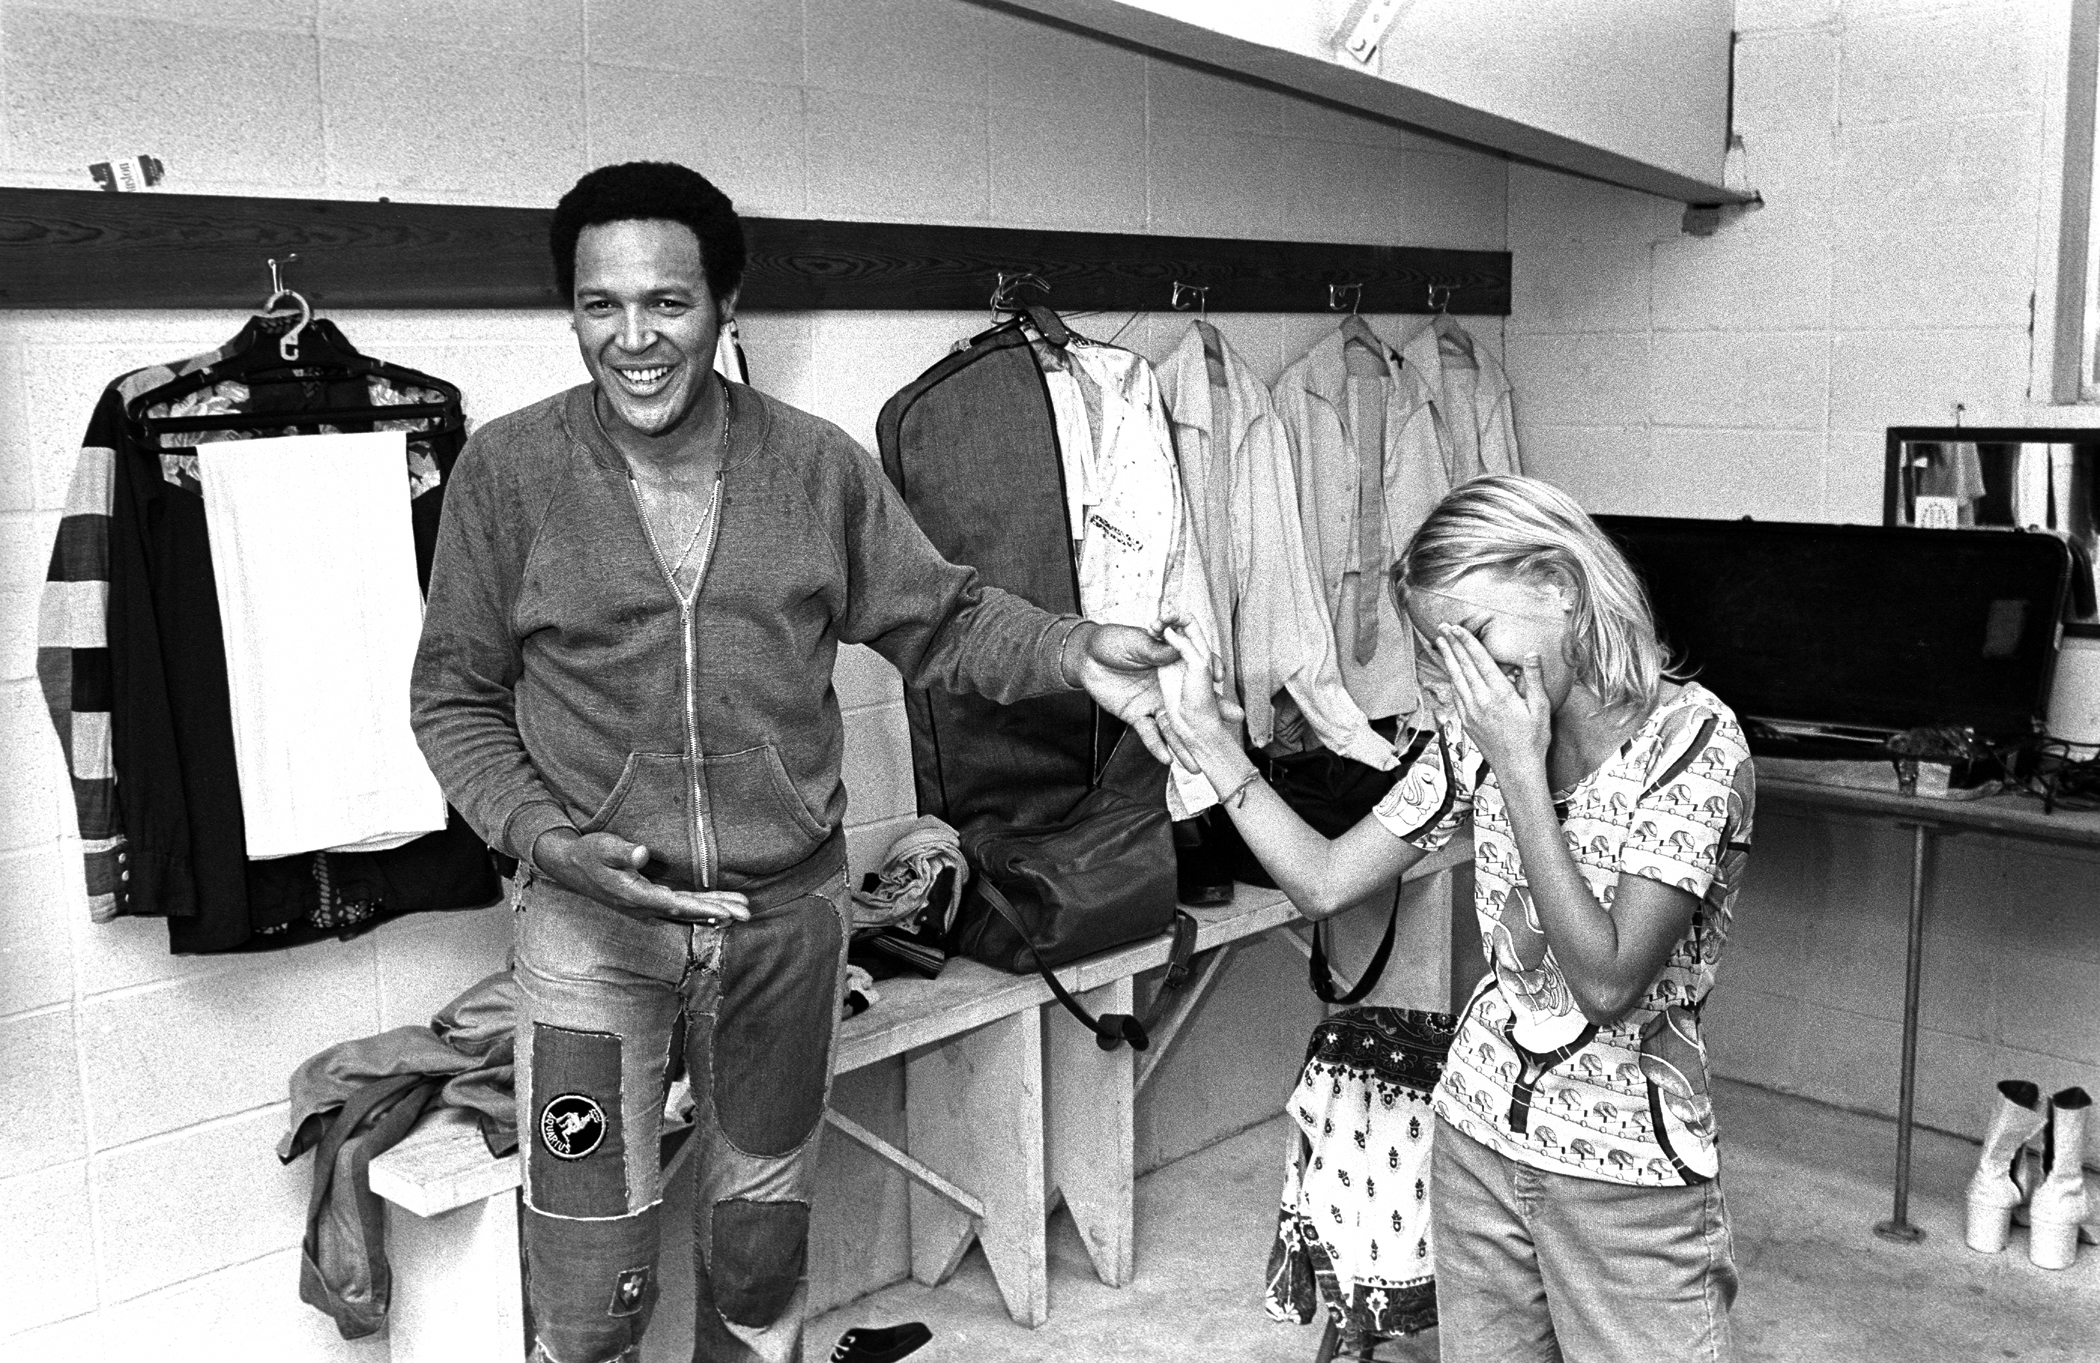 Chubby Checker greets fan backstage 1976